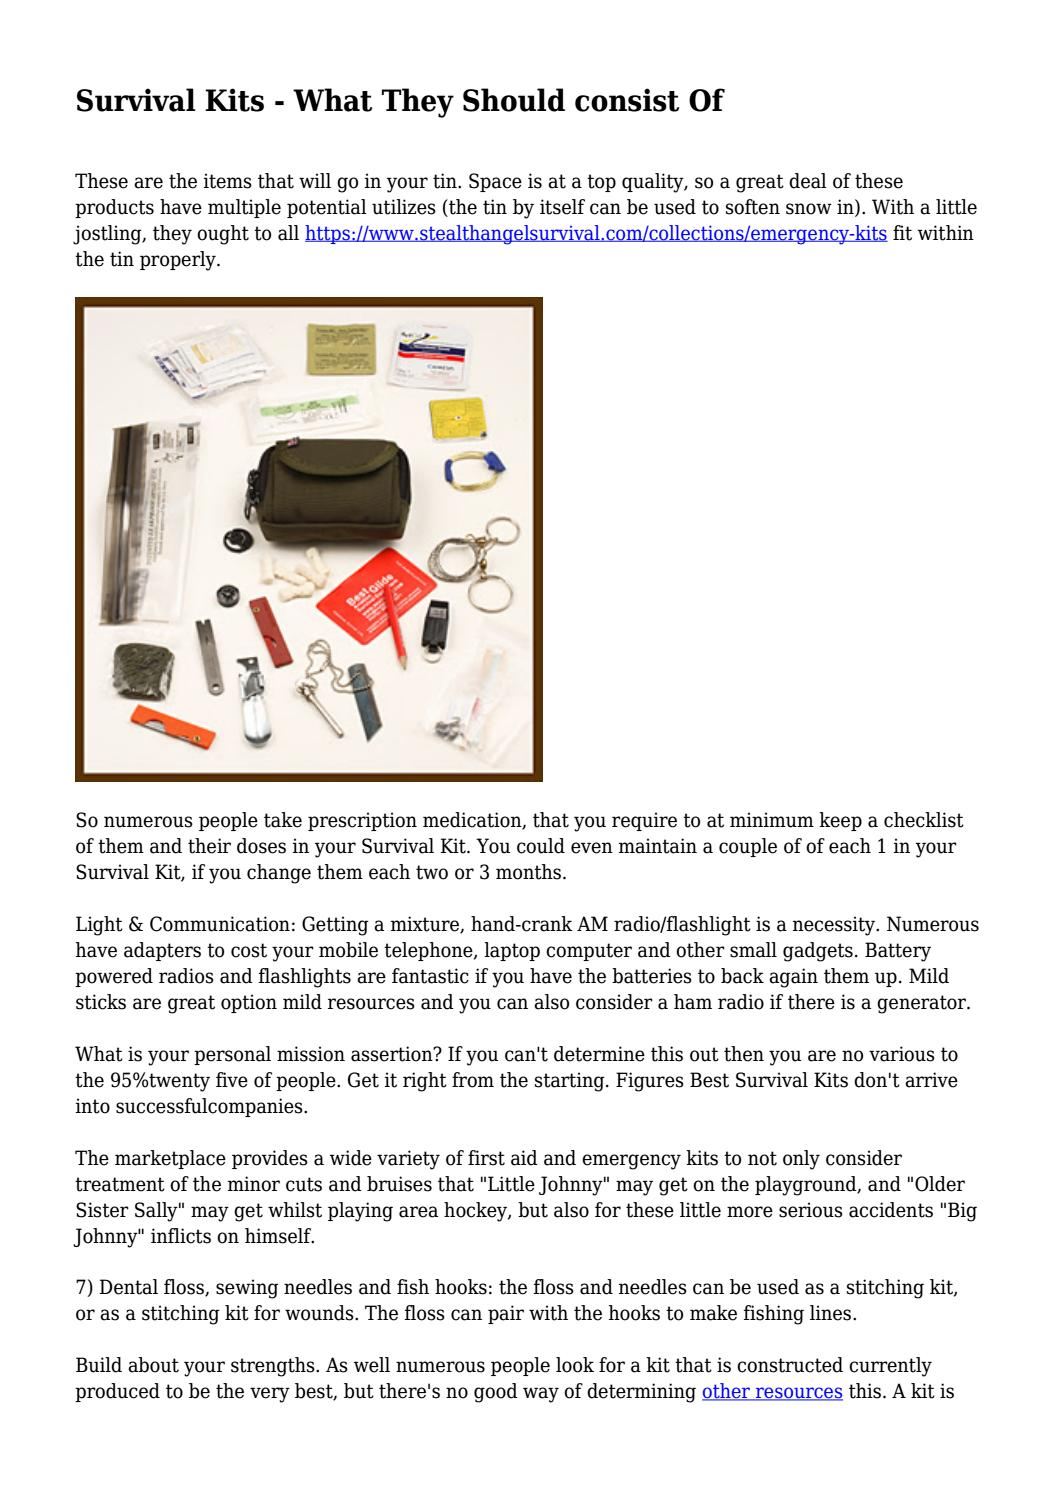 Survival Kits - What They Should consist Of by